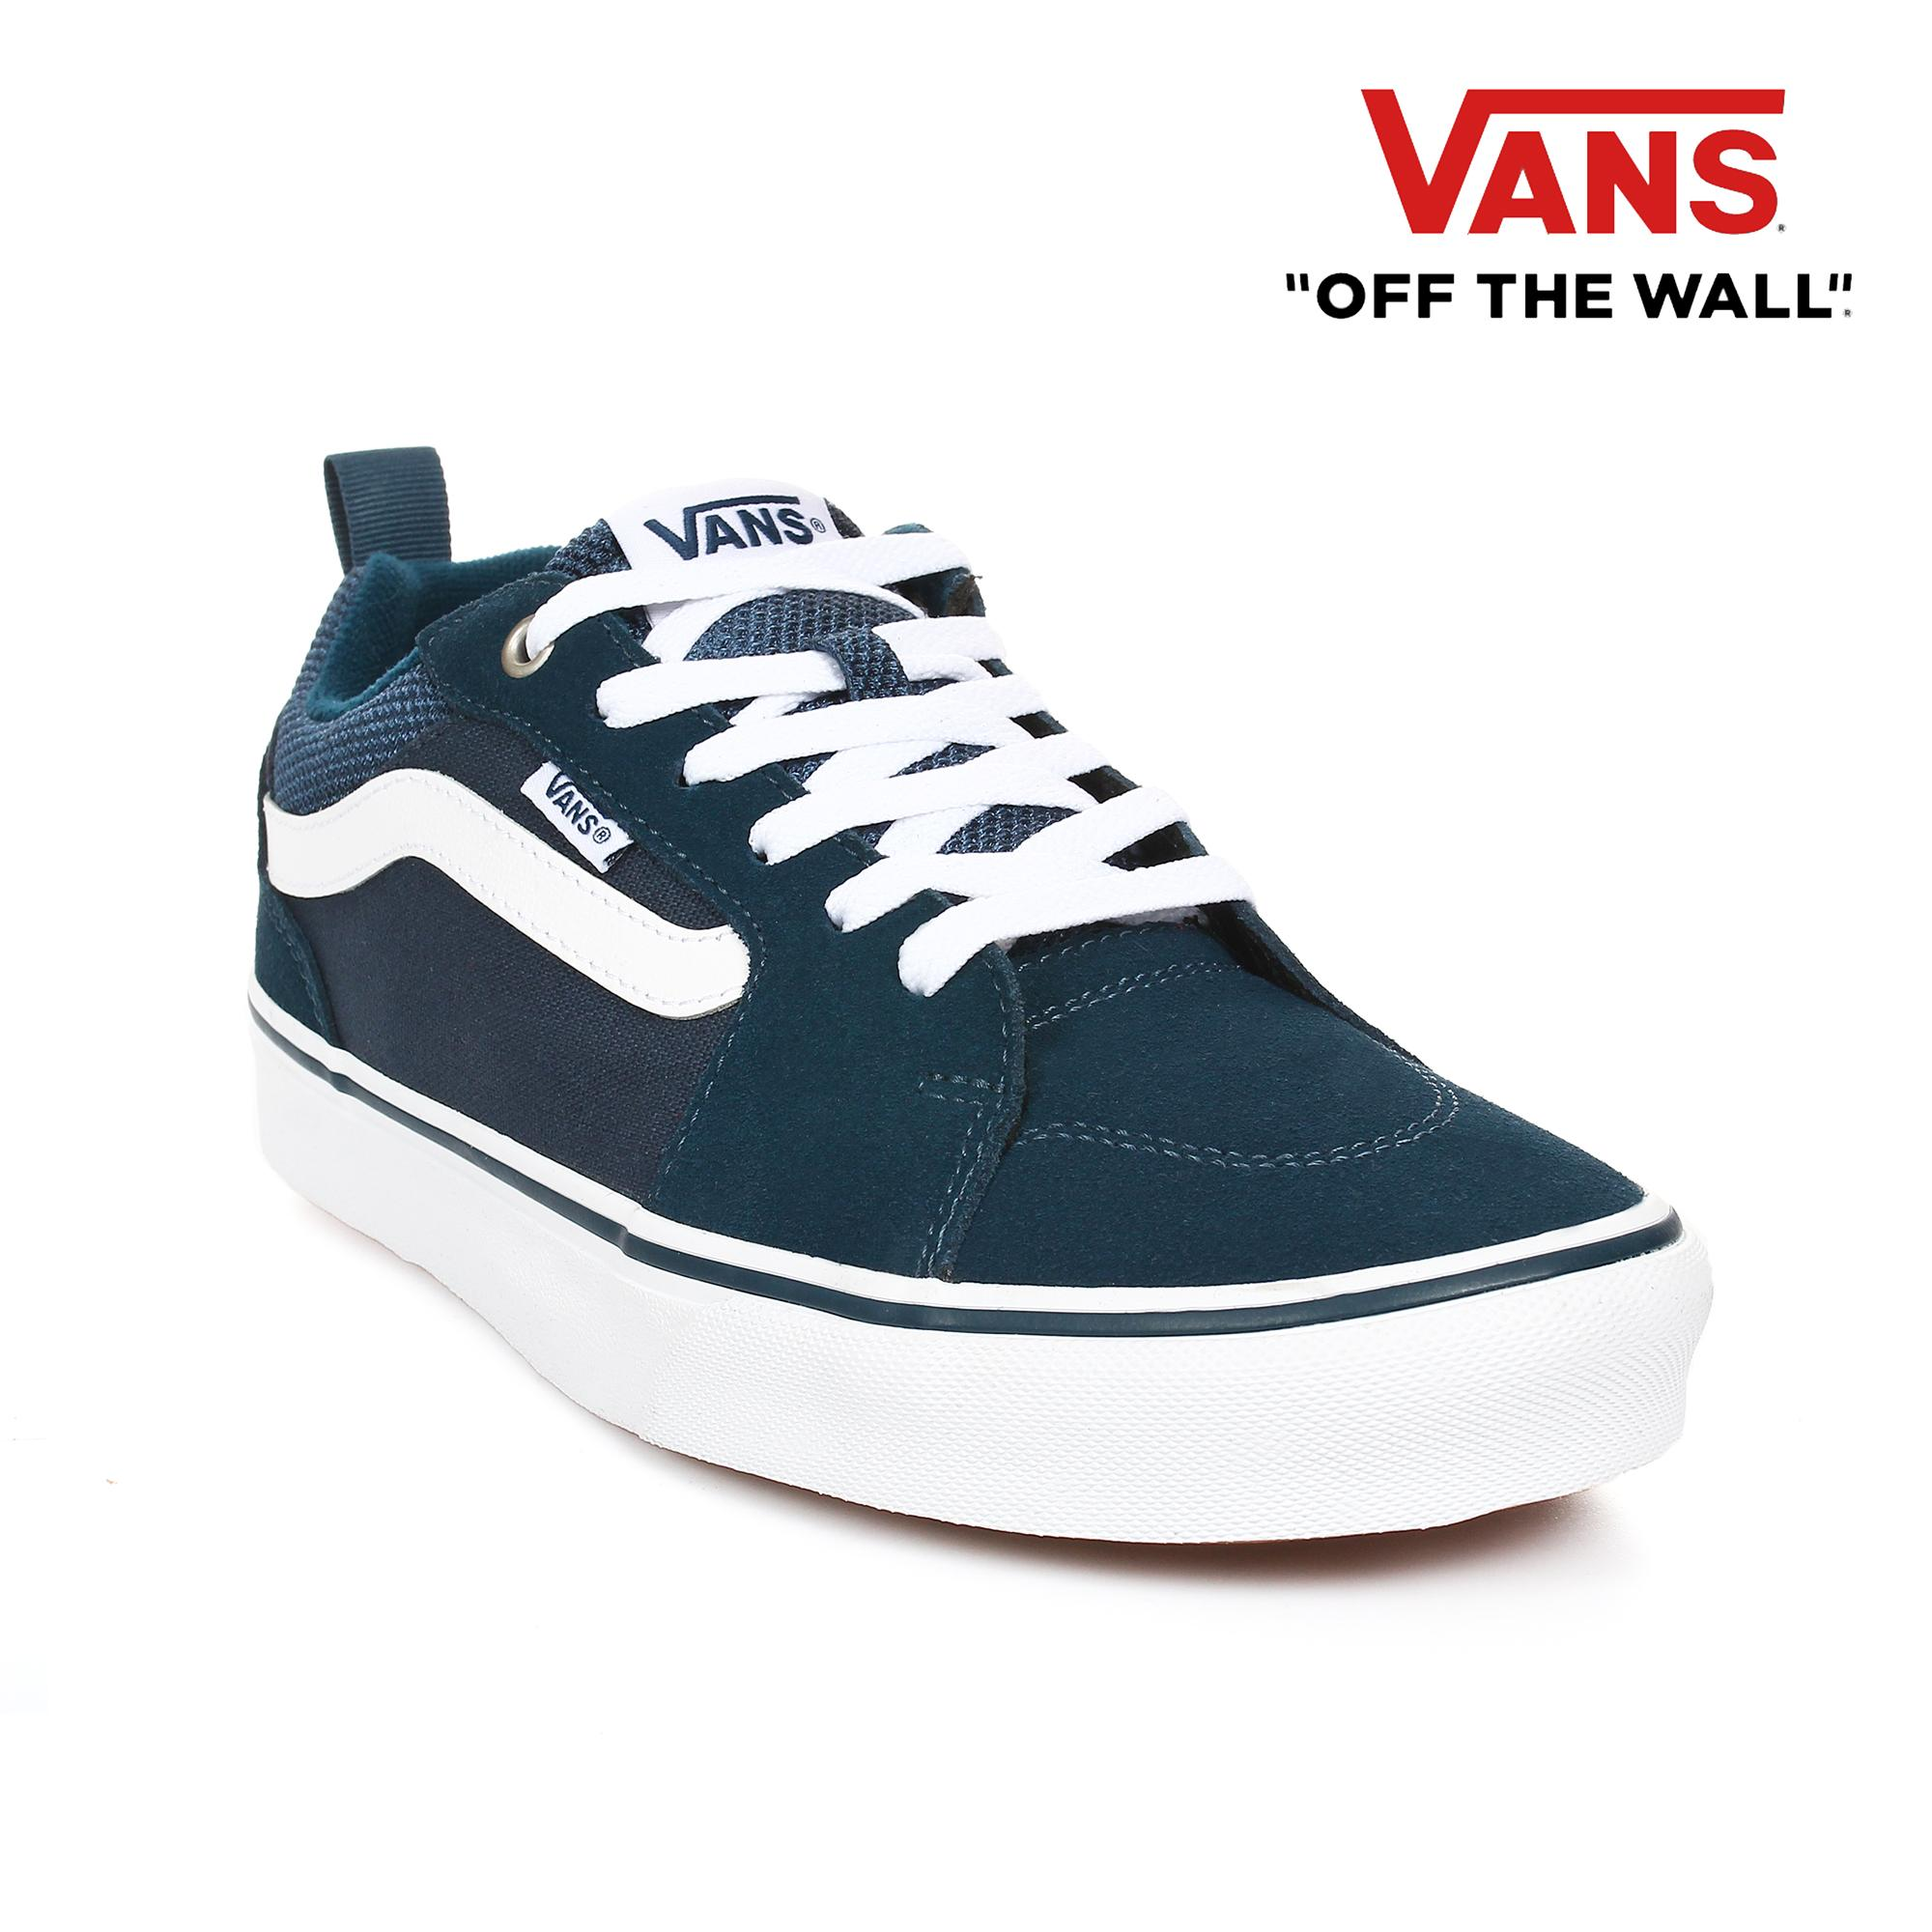 5ff873cd5c1 Vans Shoes for Men Philippines - Vans Men s Shoes for sale - prices ...